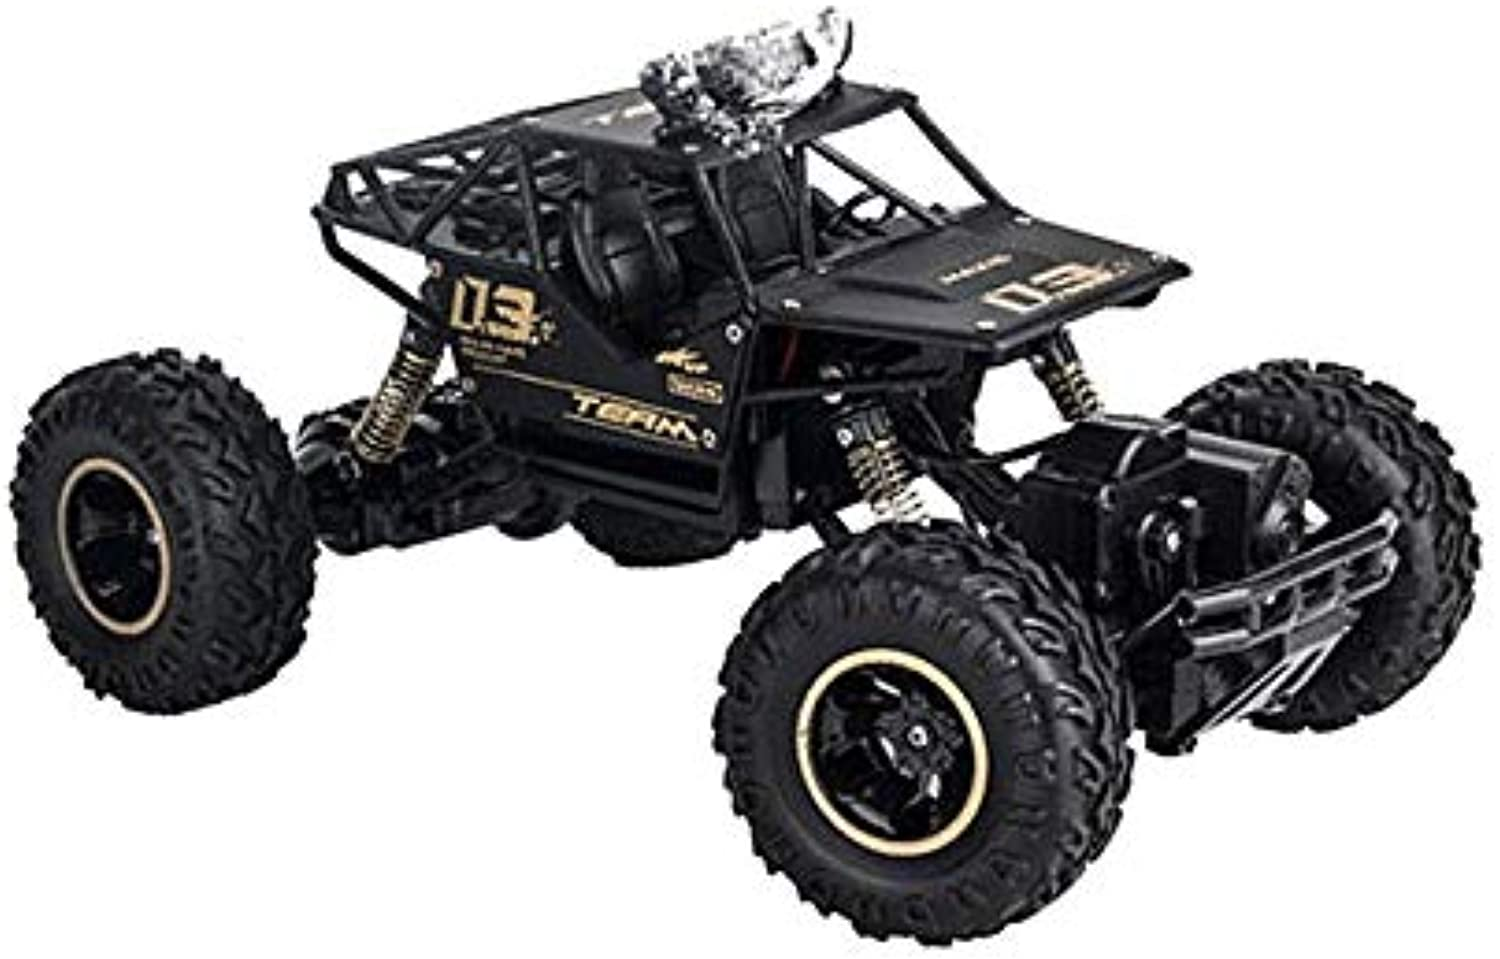 Generic RC Car 1 16 4WD Rock Crawlers Driving Car Double Motors Bigfoot RC Car Four Way Remote Control RC Car Off Road Vehicle Toy 116 26cm Black